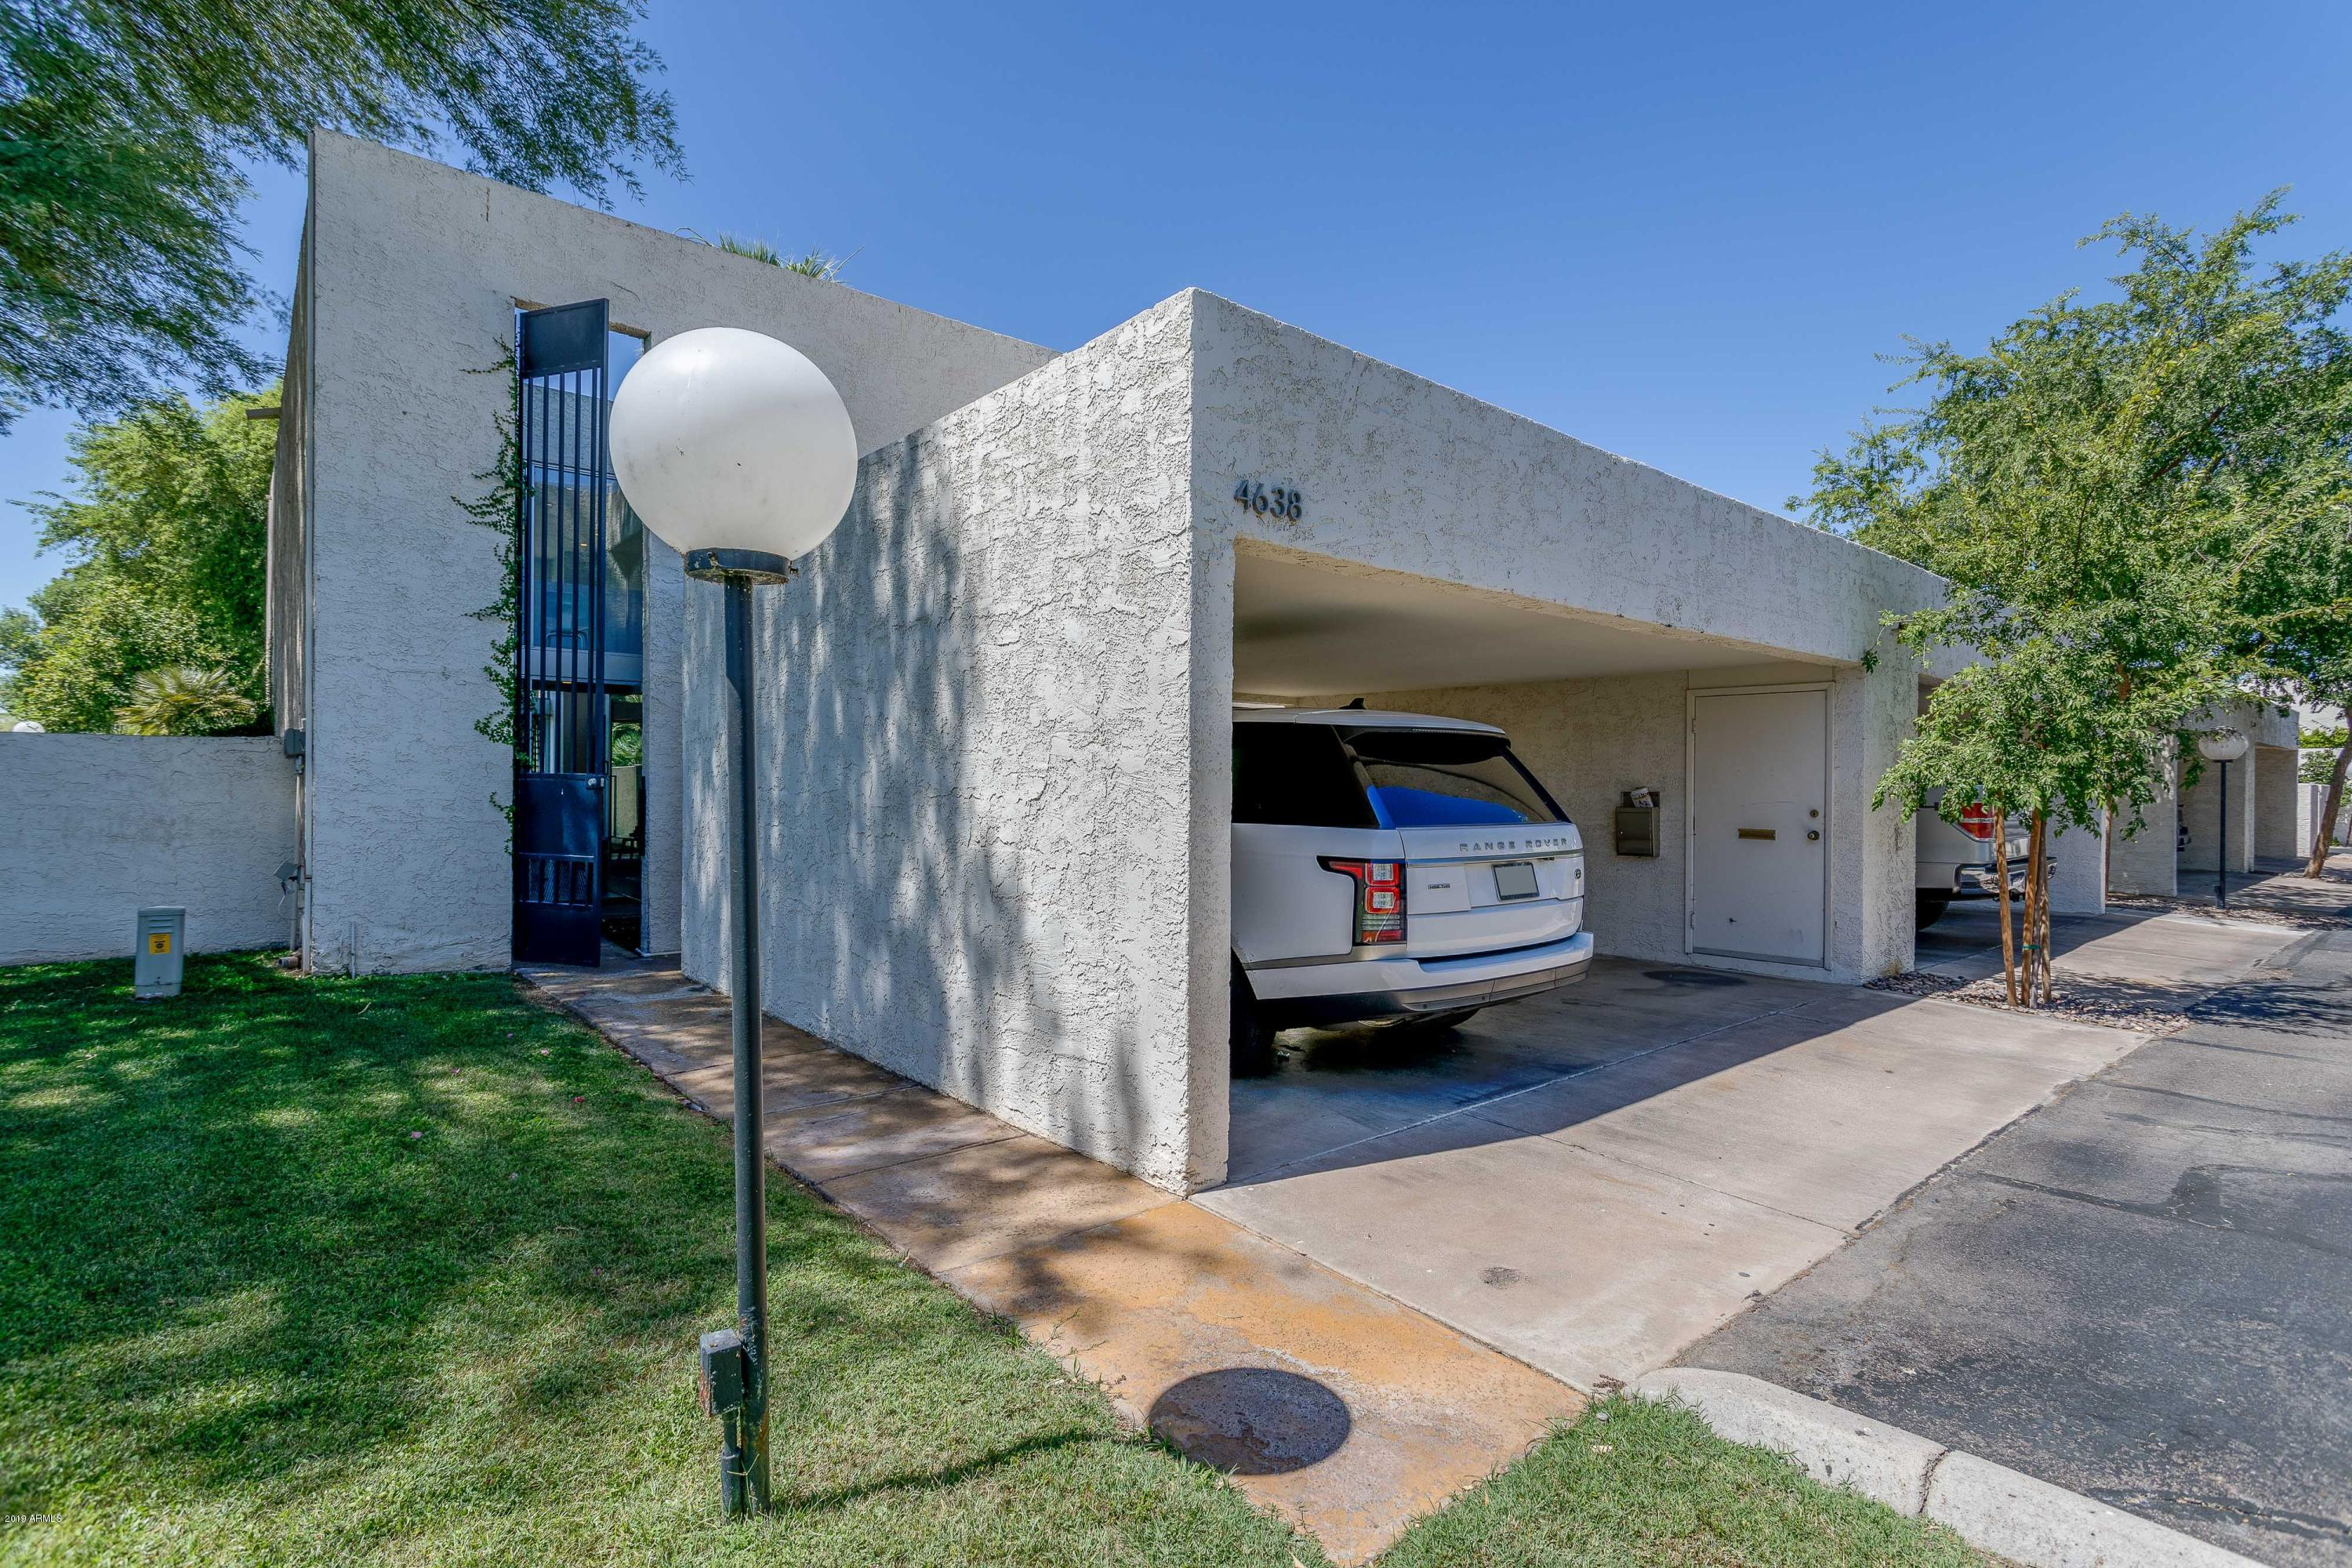 4638 N 40TH Street, one of homes for sale in Phoenix-Camelback Corridor